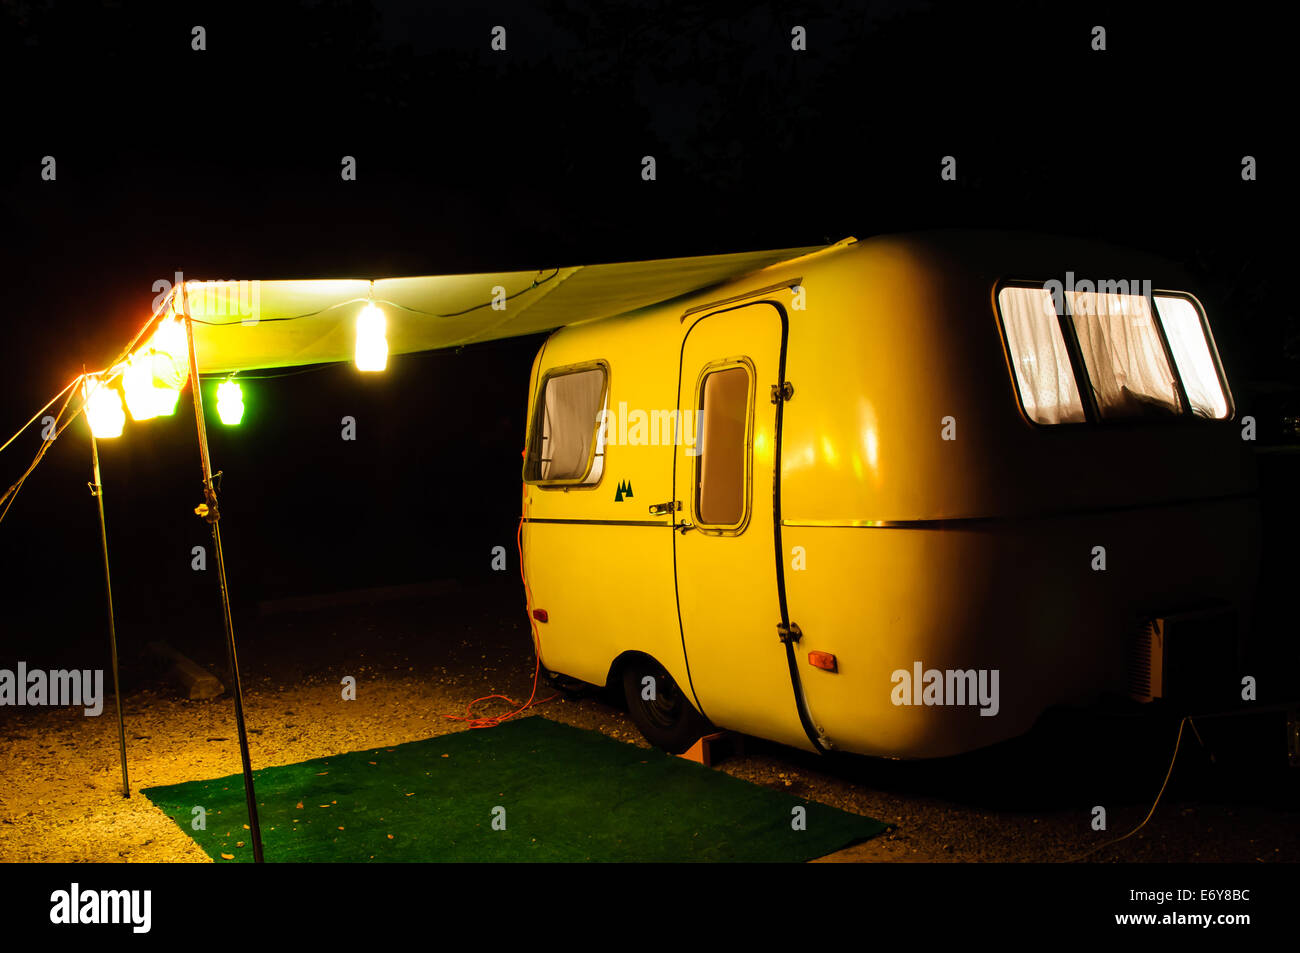 Trailer Lights Stock Photos Images Alamy How To Hook Up Scamp Travel Set With A Canopy And At Campsite Night